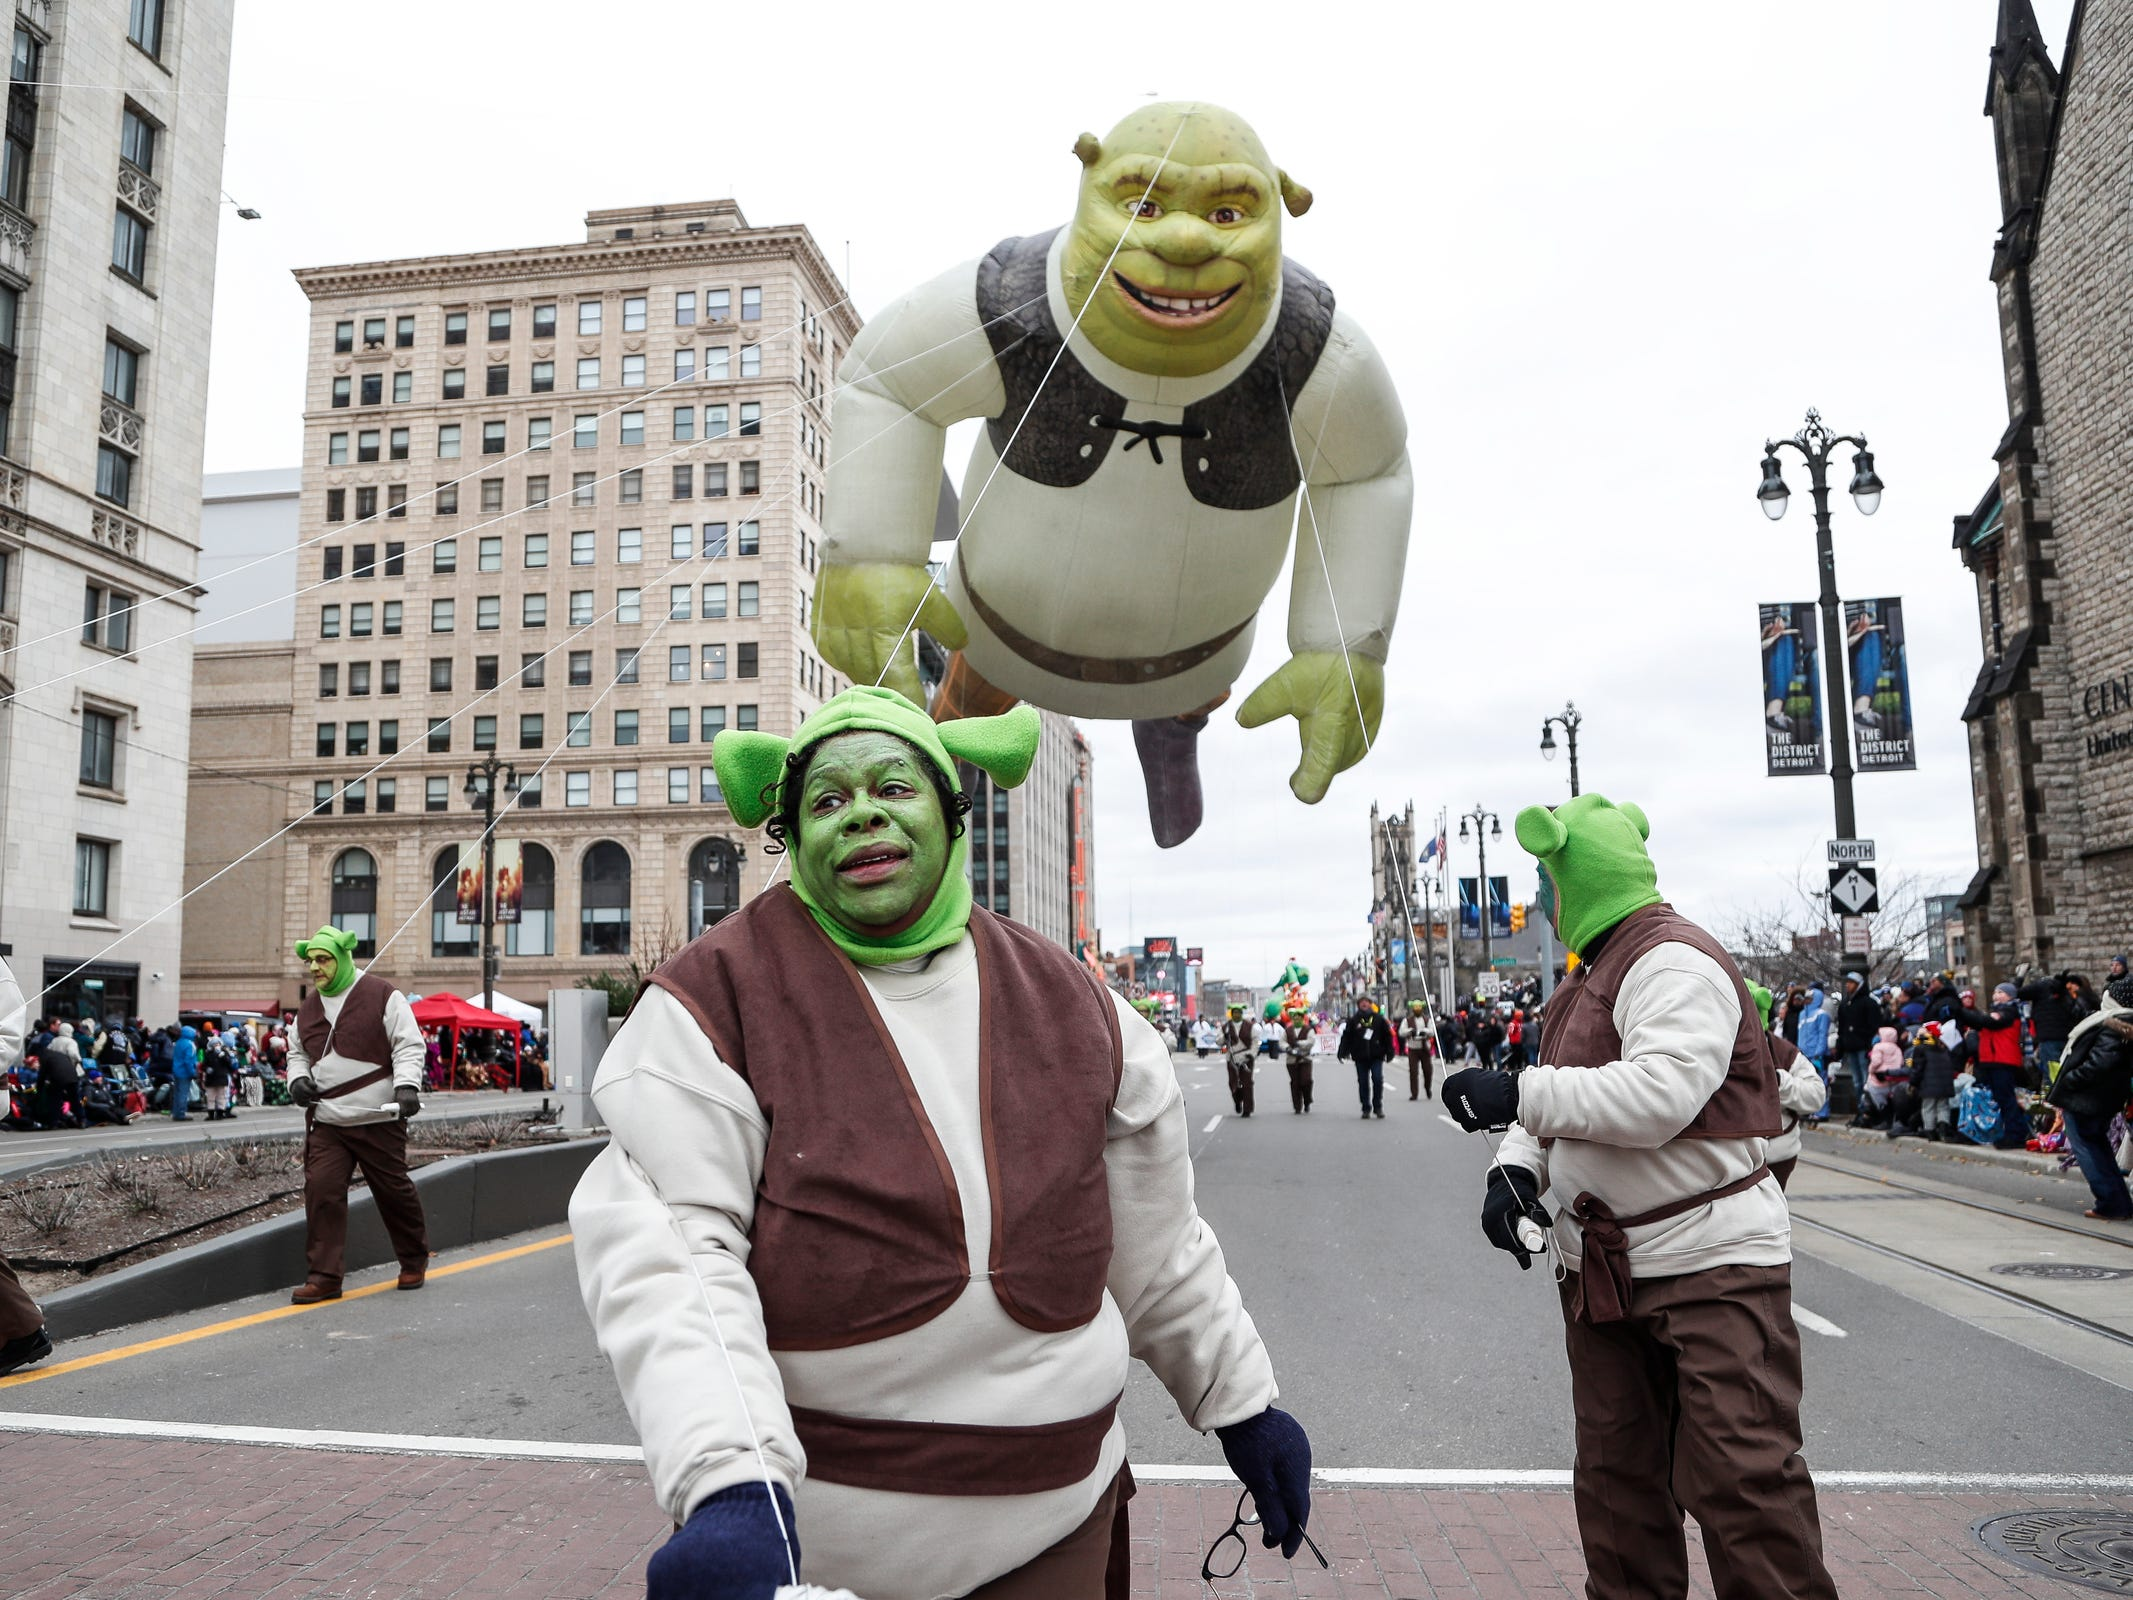 Shrek float handler Wendy Little, center, takes the balloon down Woodward Avenue during the 92nd America's Thanksgiving Day Parade in Detroit, Thursday, Nov. 22, 2018.